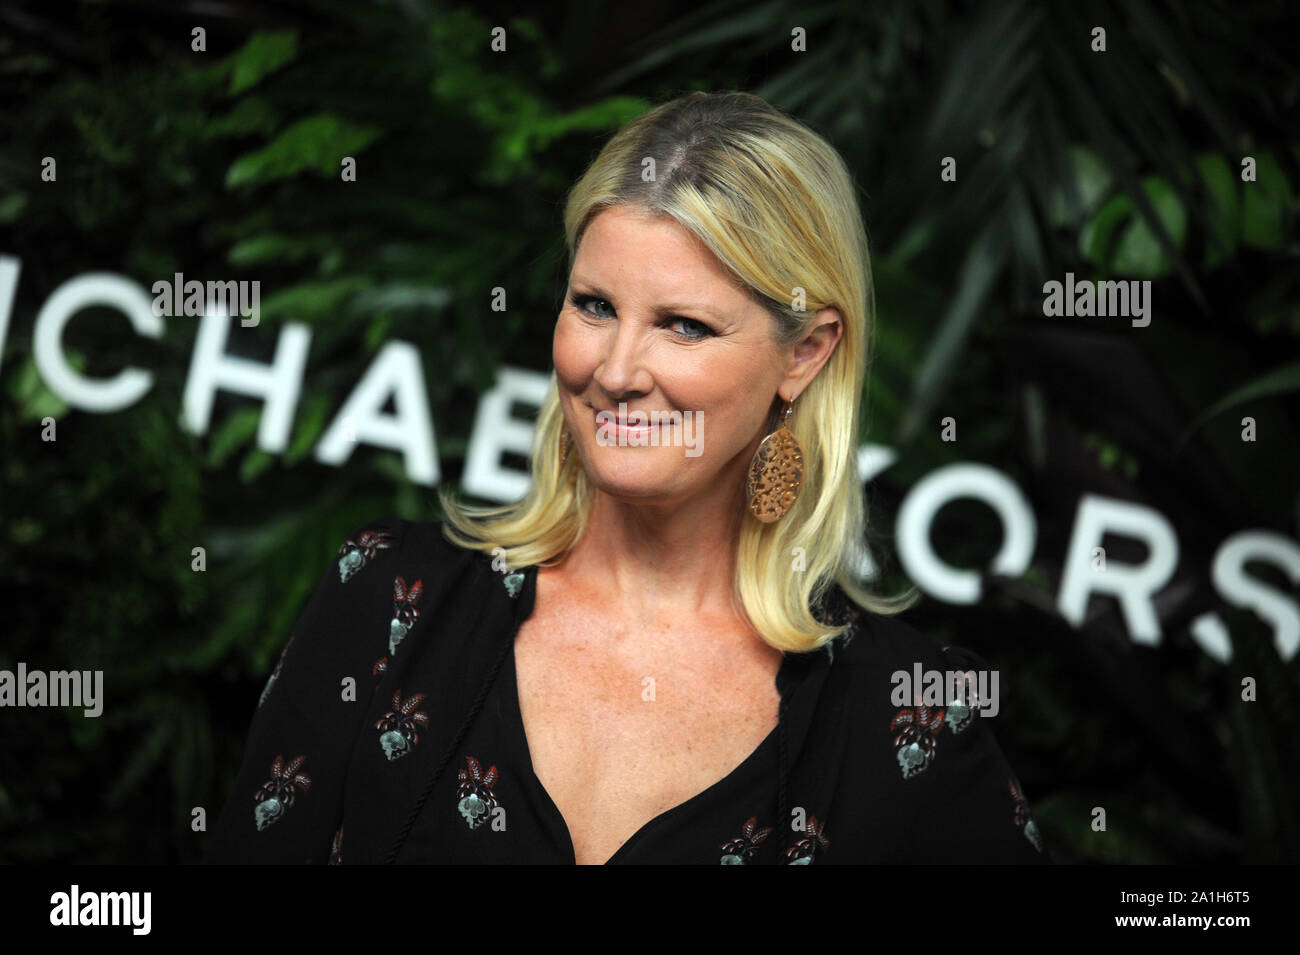 Manhattan, United States Of America. 17th Oct, 2017. NEW YORK, NY - OCTOBER 16: Sandra Lee attends the 11th Annual God's Love We Deliver Golden Heart Awards at Spring Studios on October 16, 2017 in New York City. People: Sandra Lee Credit: Storms Media Group/Alamy Live News Stock Photo